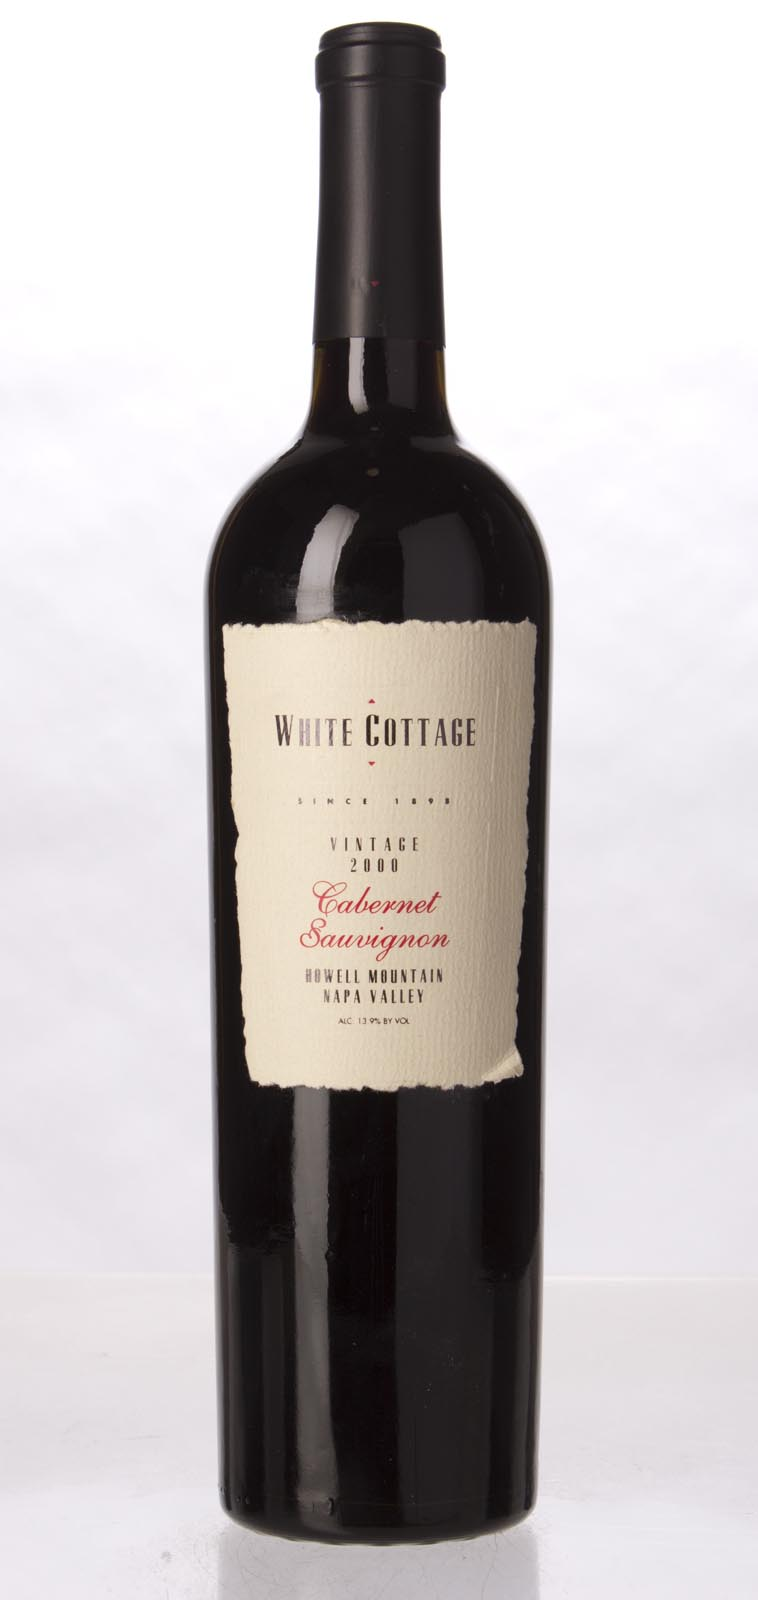 White Cottage Cabernet Sauvignon Howell Mountain 2000, 750mL () from The BPW - Merchants of rare and fine wines.